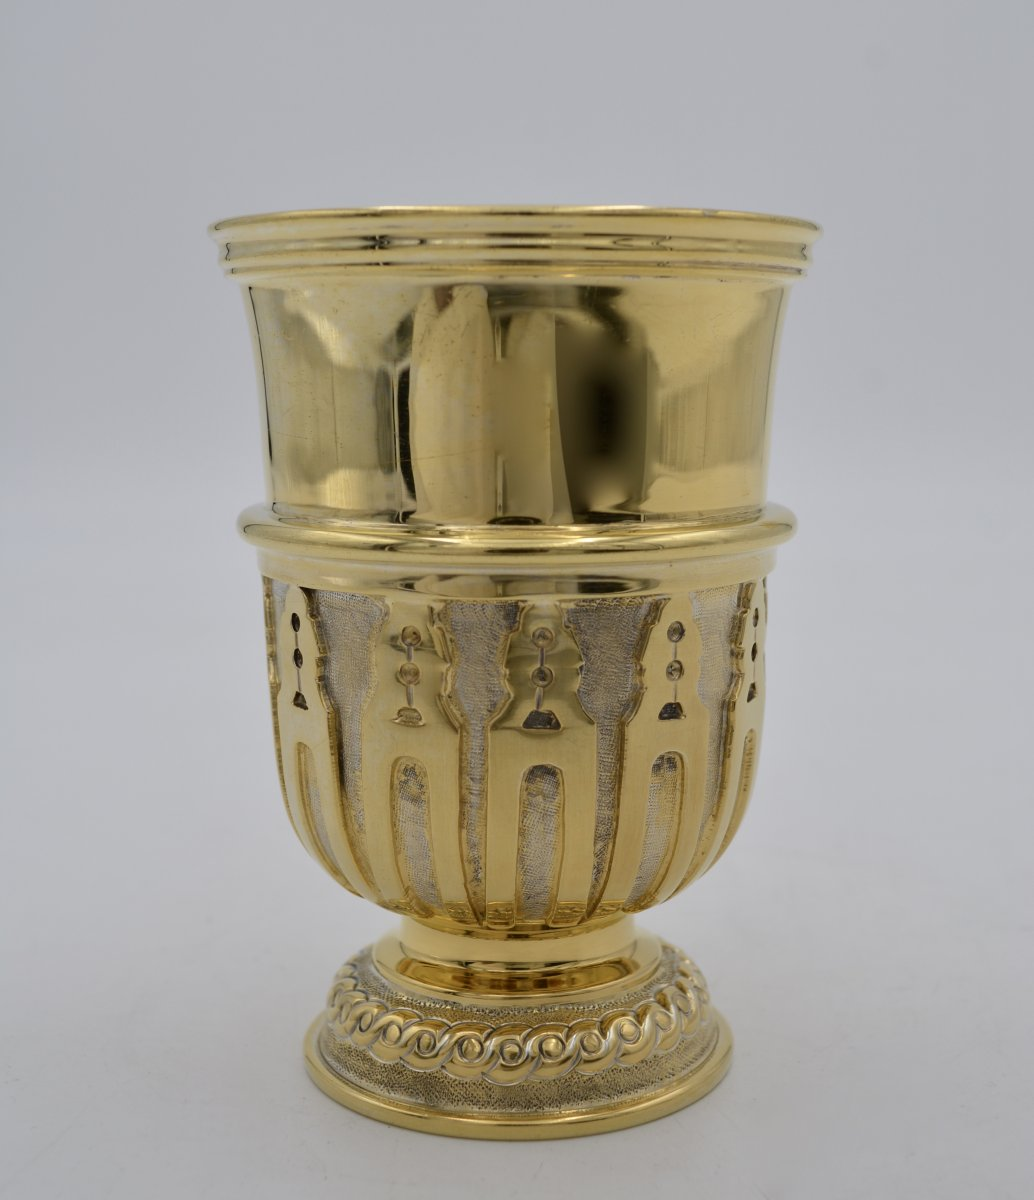 Timbal In Gilded Silver, Mexico  XX Century Tane Orfevres